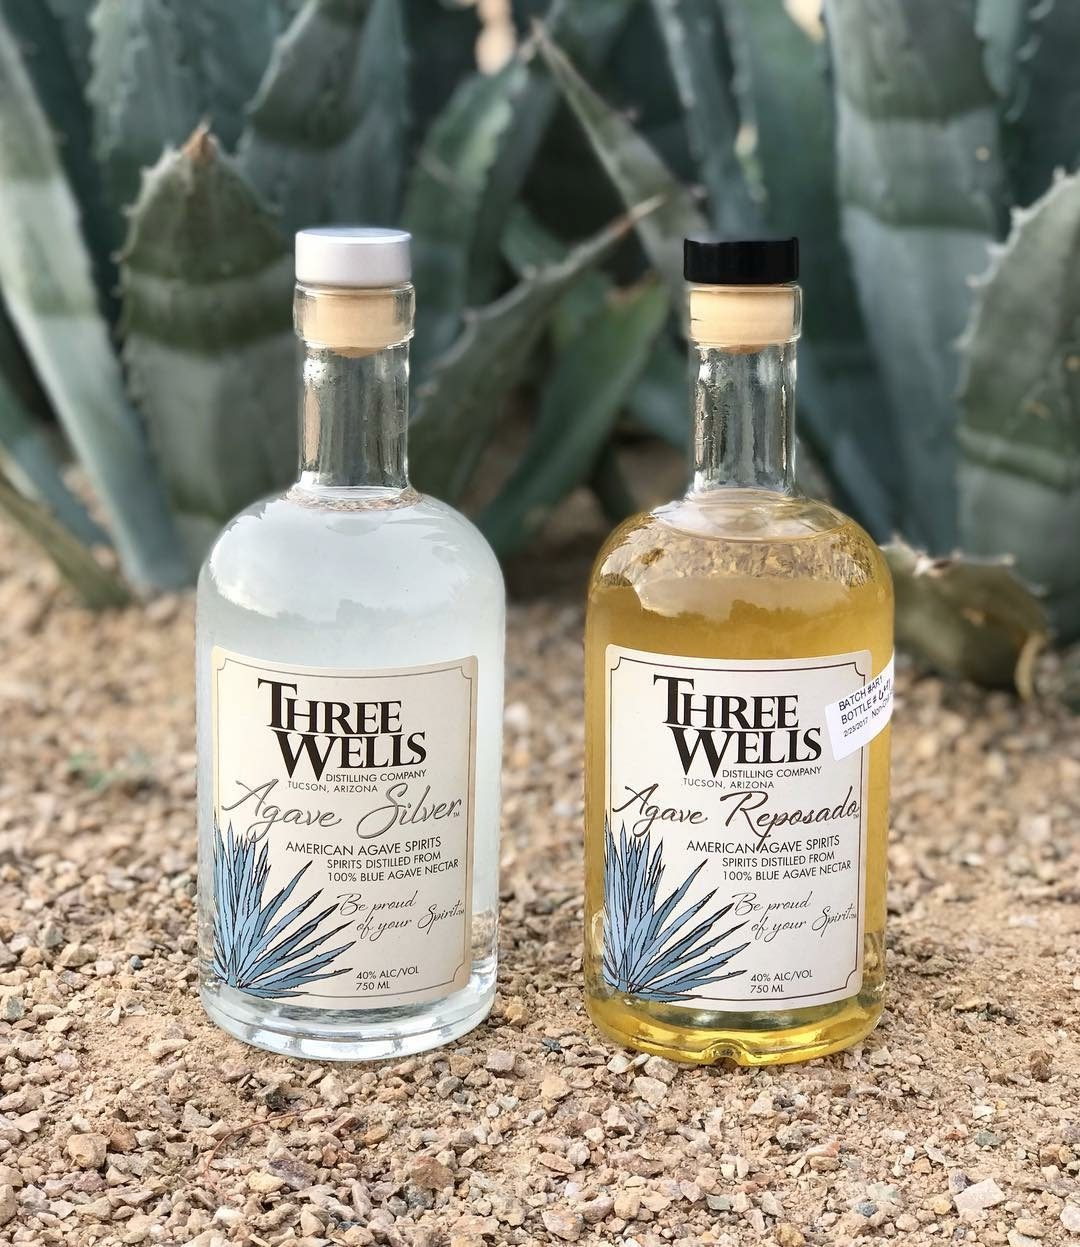 Three Wells Distilling